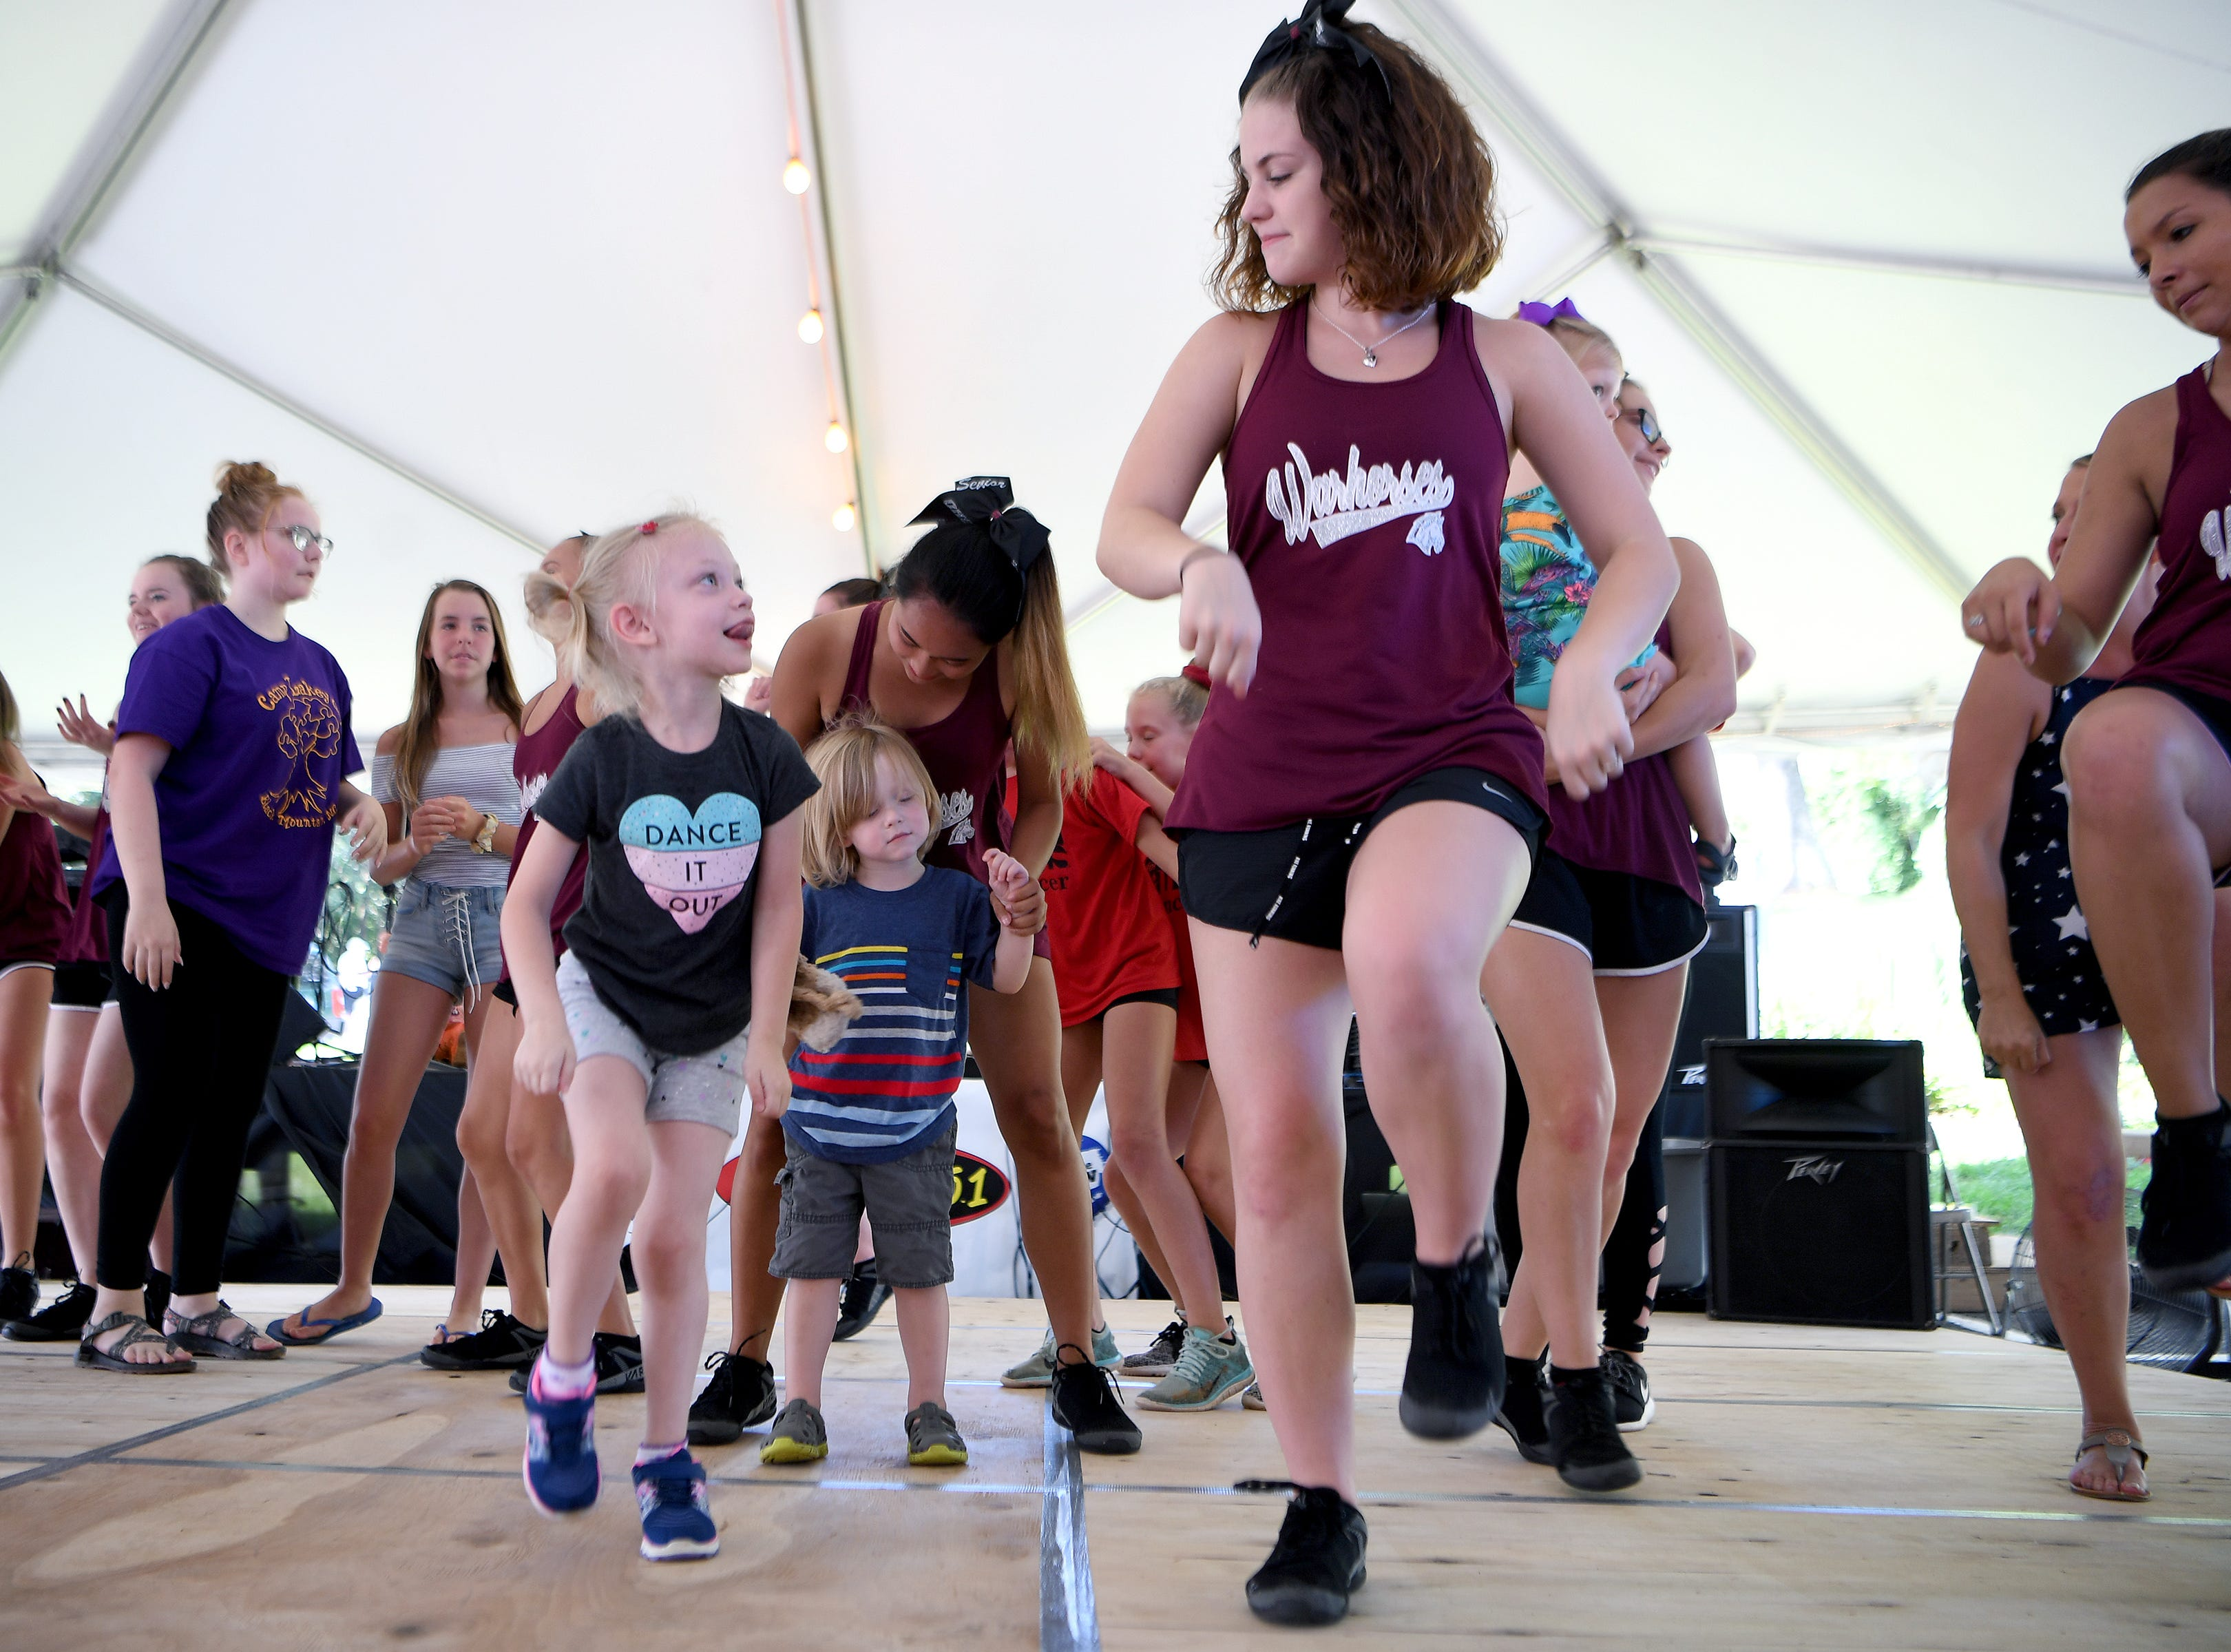 Lily Shelton, 4, looks up to Owen High School senior dance team member, Haley Roberts, 17, as children join the dancers onstage for a fun dance party number following their performances during the 41st annual Sourwood Festival in Black Mountain on Saturday, Aug. 11, 2018.